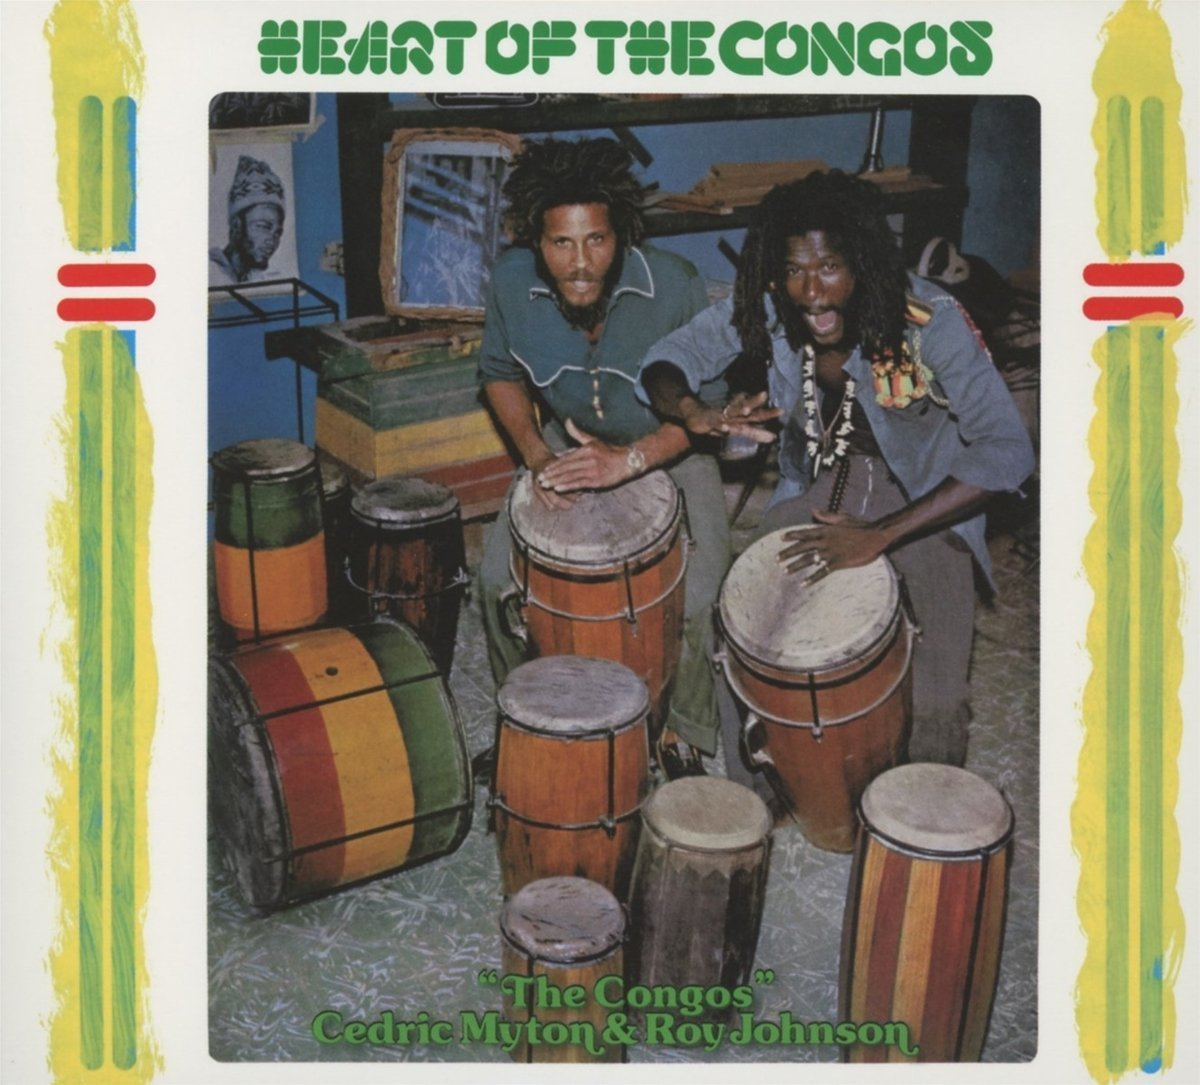 world REG 06 17 CONGOS